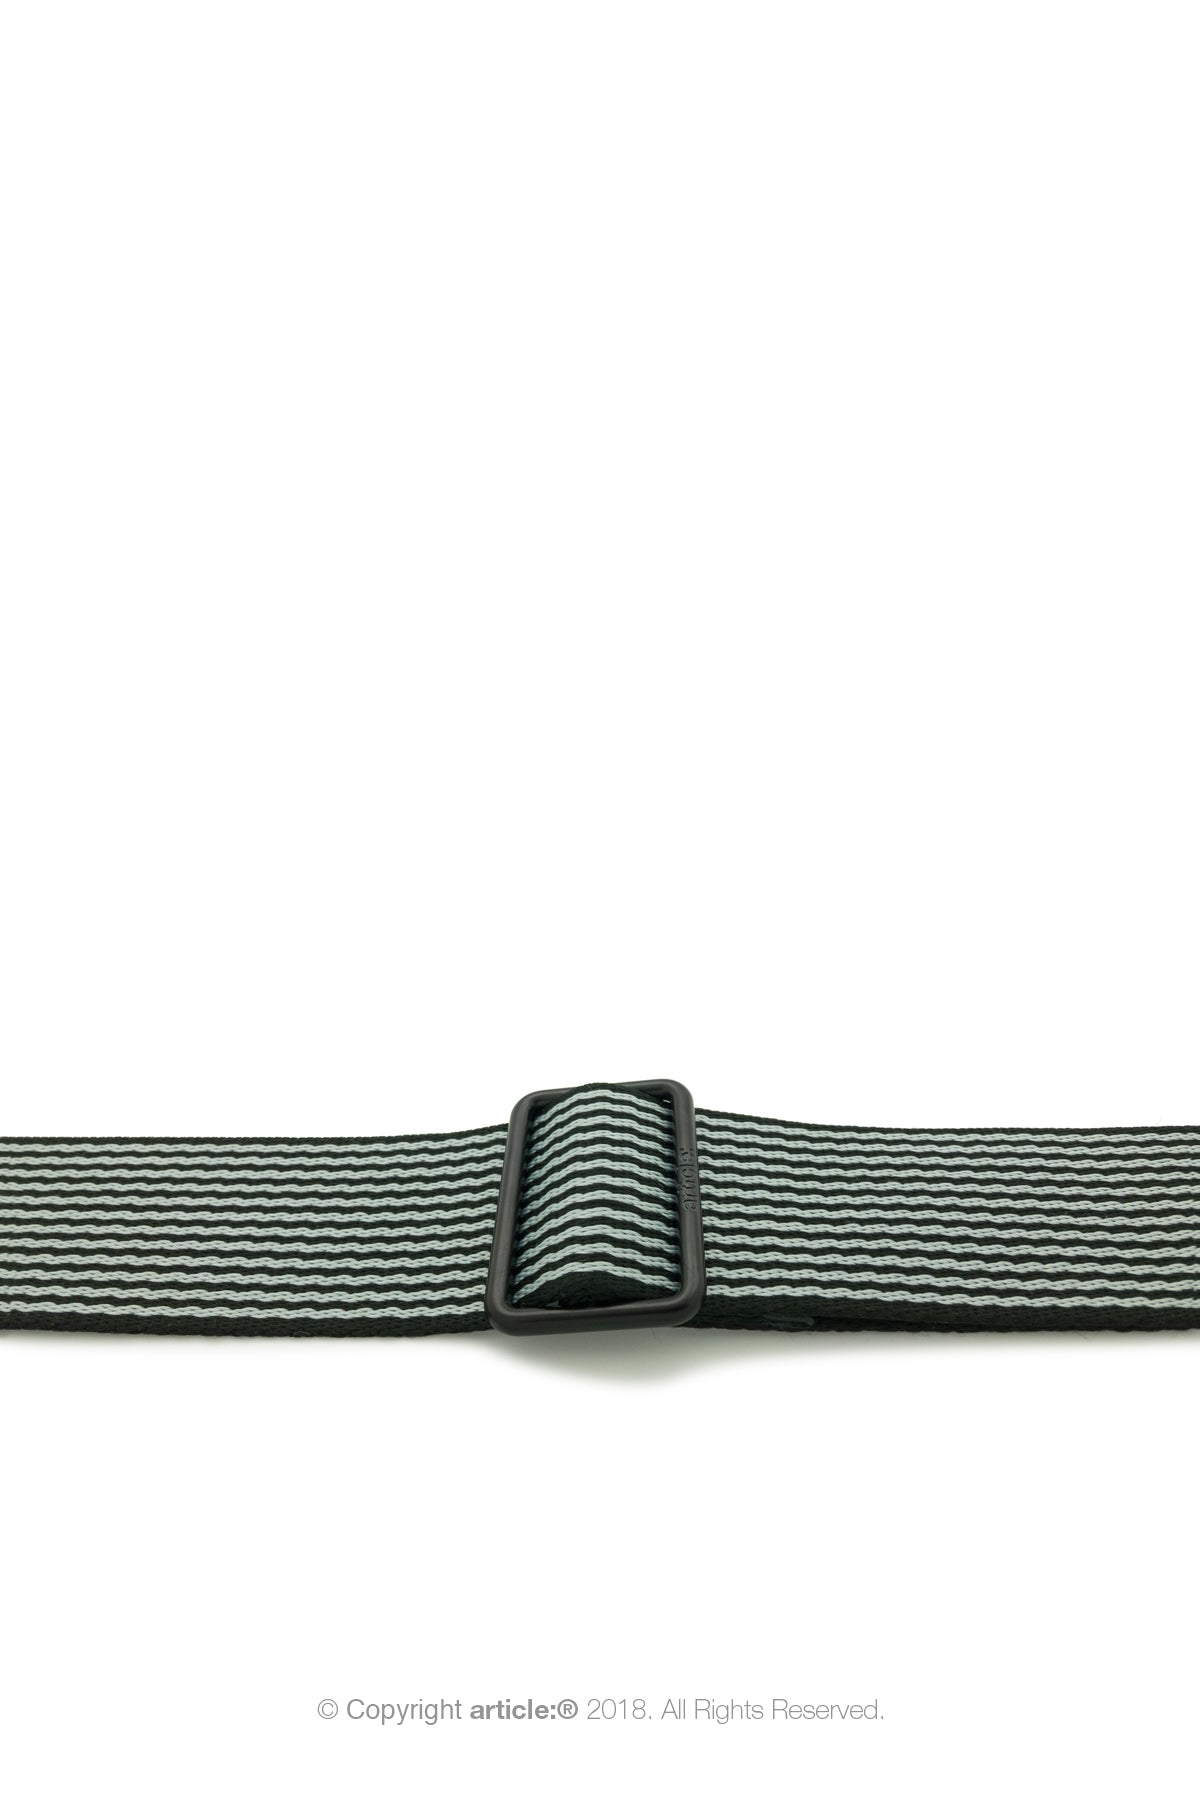 article: #320 Crossbody Strap Men - Stripe